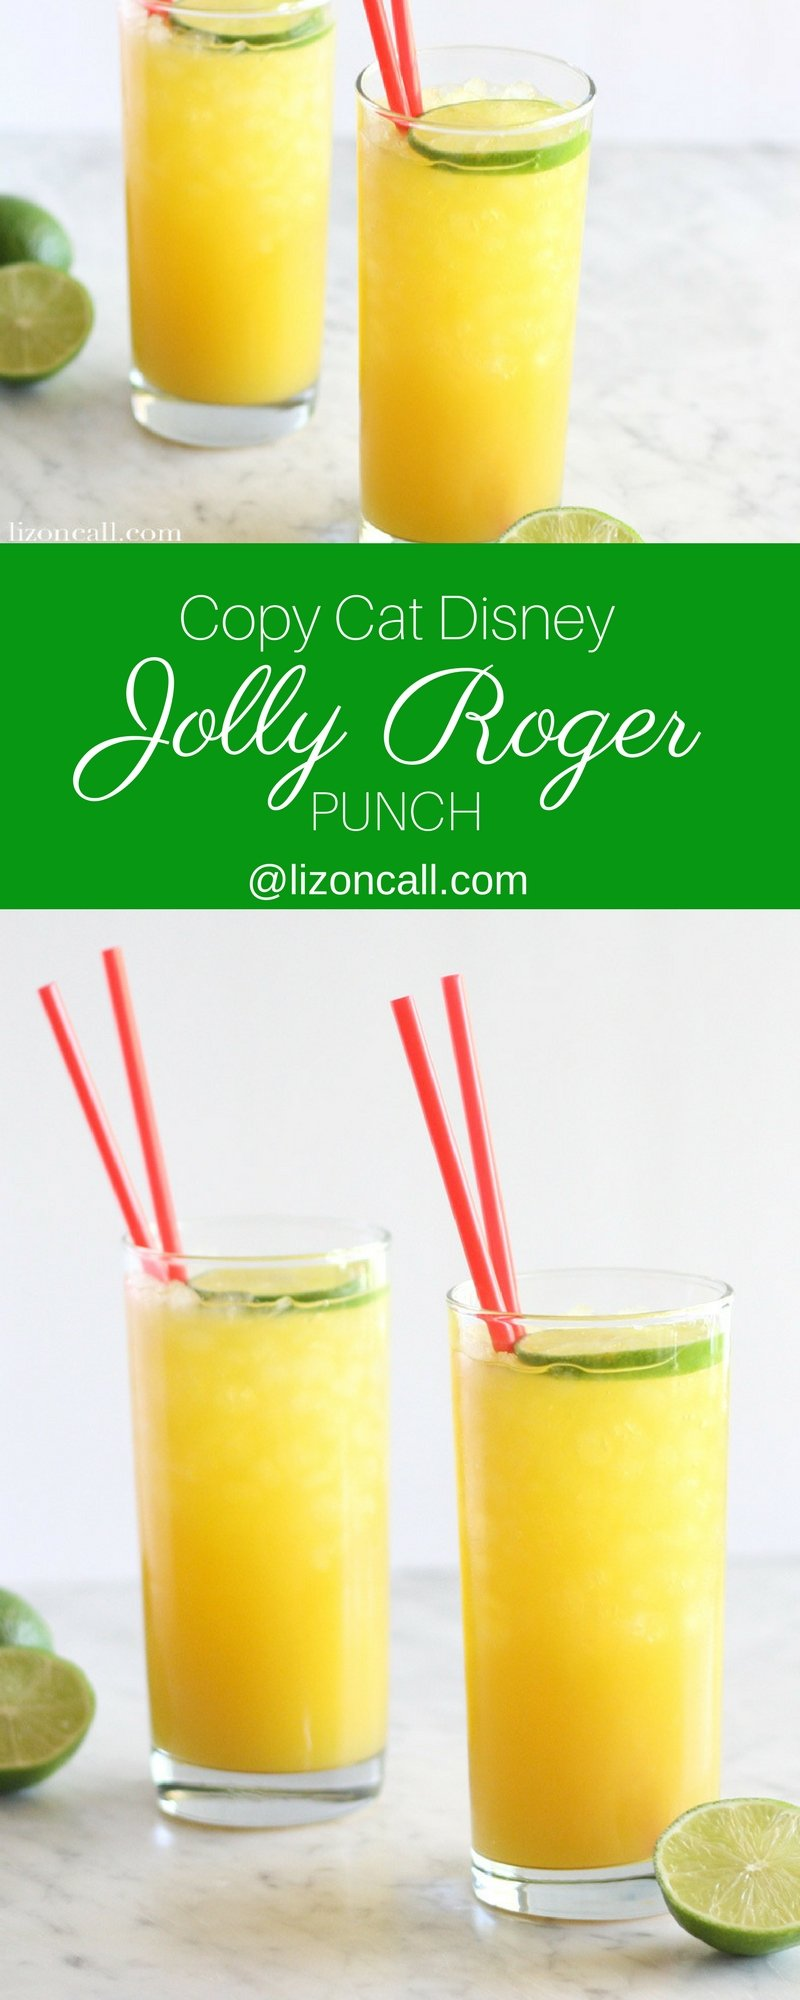 This copycat version of the Jolly Roger Punch just might be better than the original found at Disney for the 50th anniversary of the Pirates of the Caribbean.